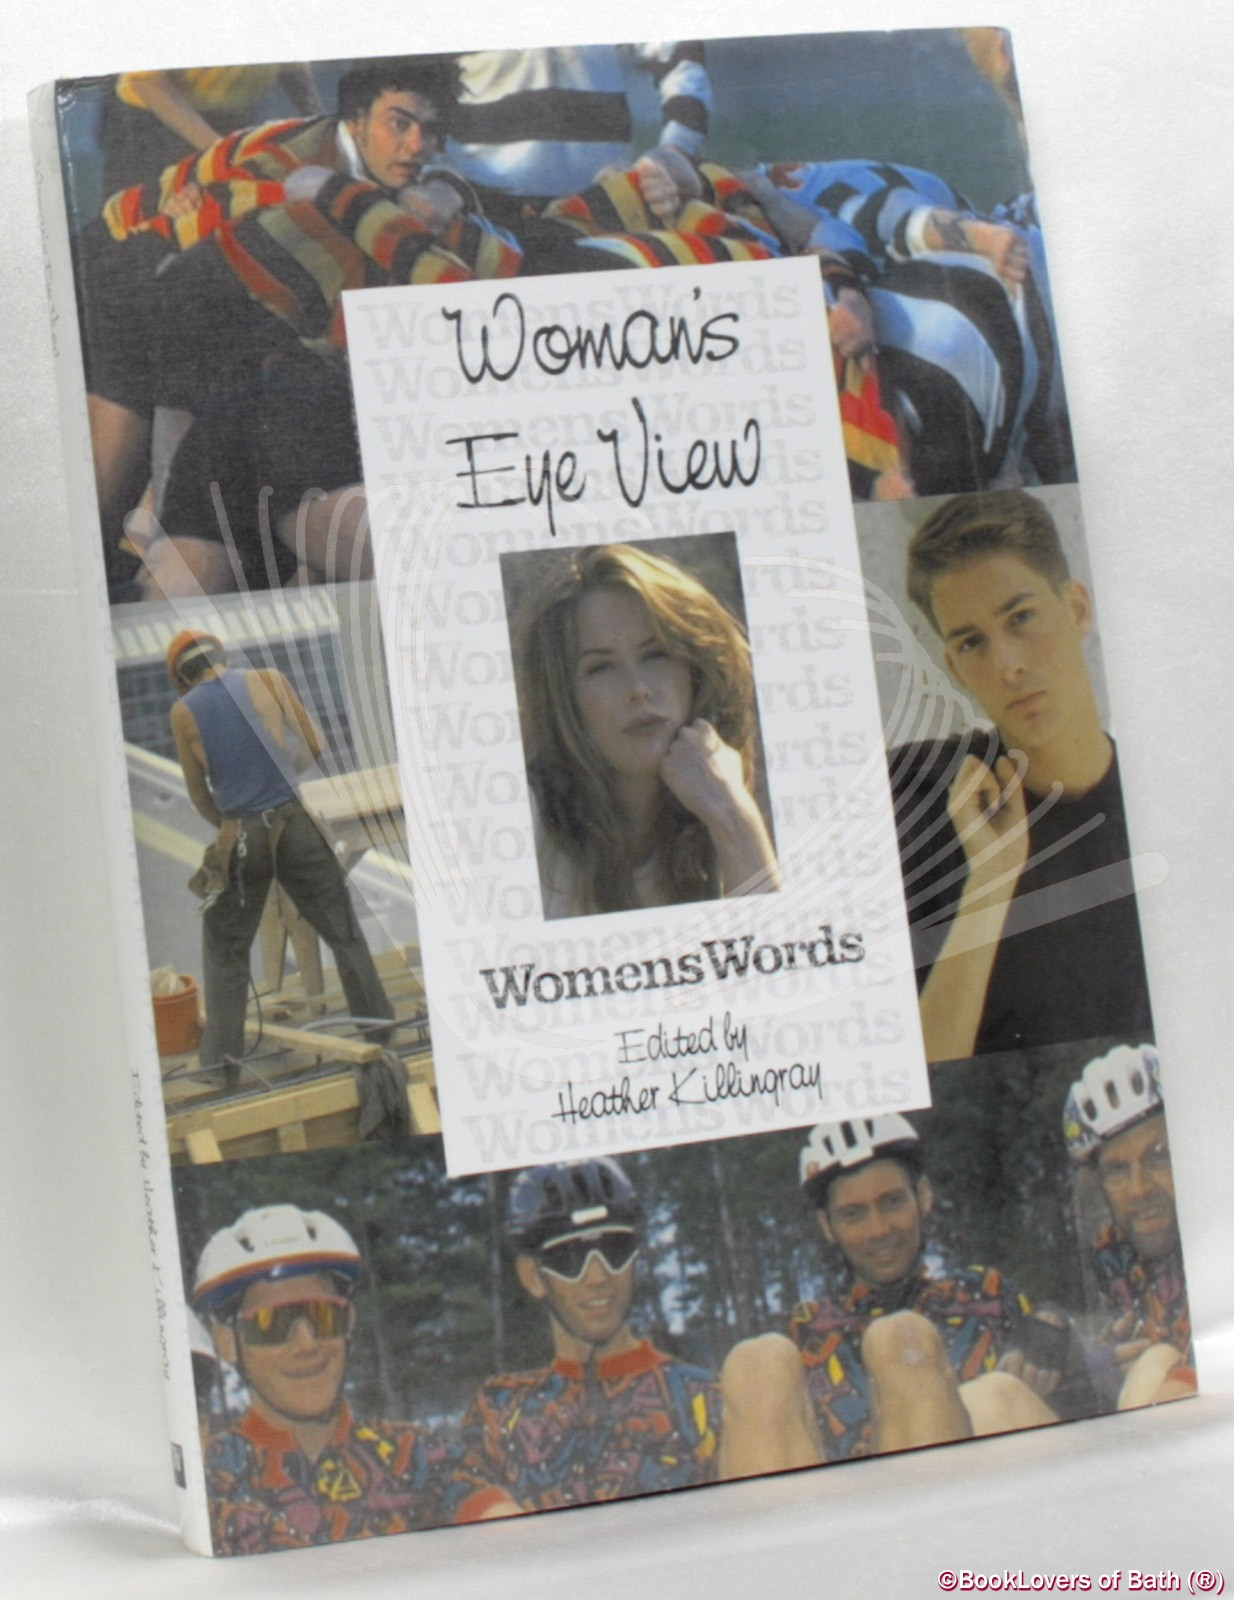 Woman's Eye View - Edited by Heather Killingray